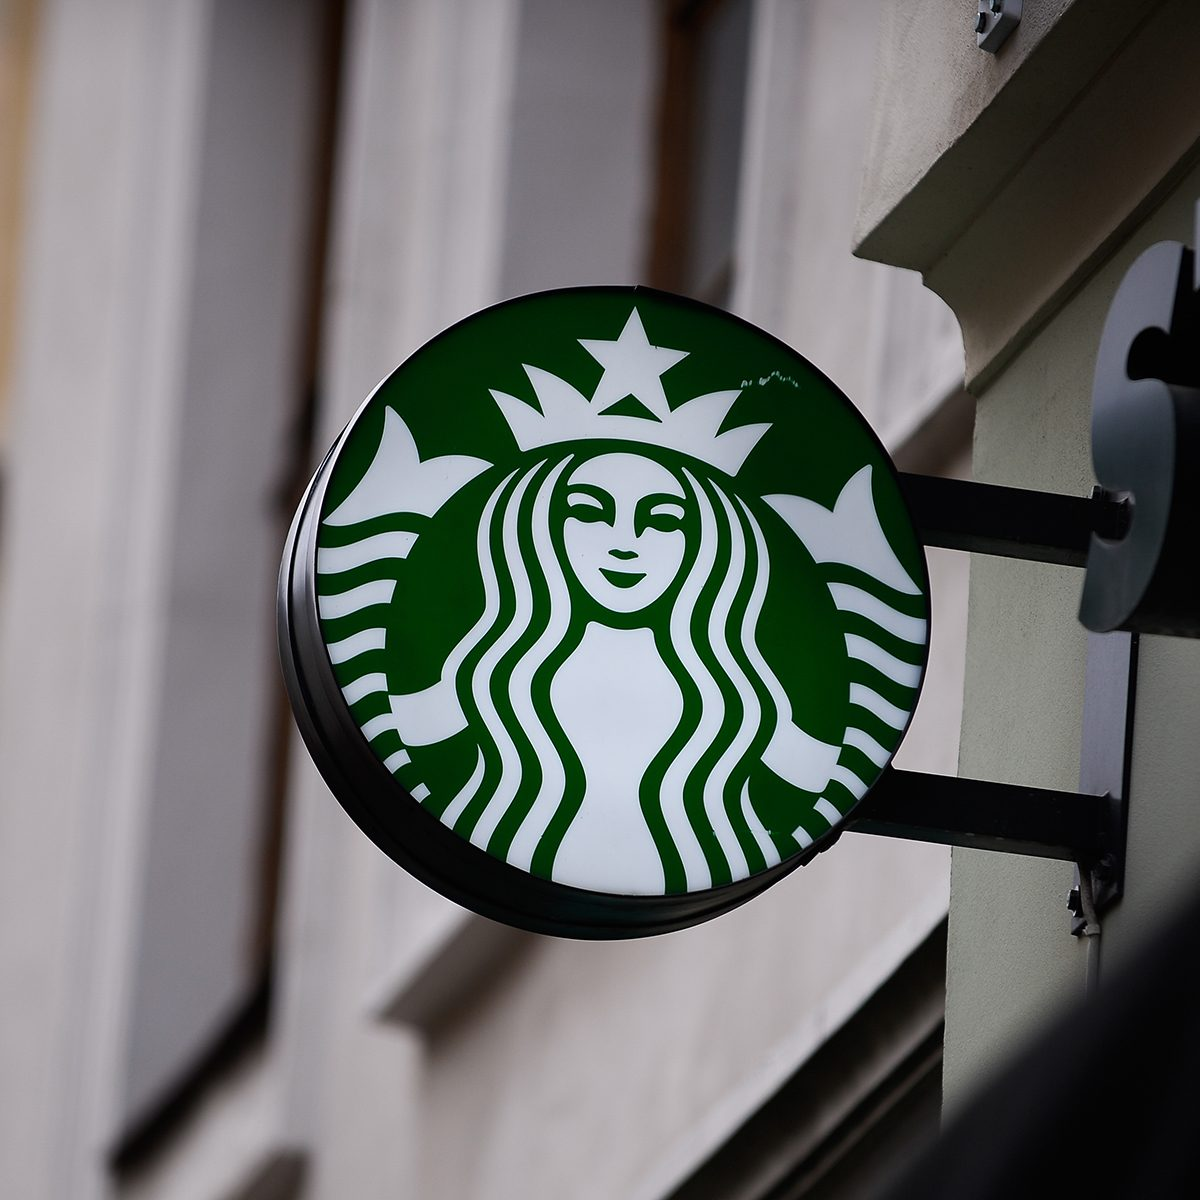 KRAKOW, POLAND - 2018/11/14: The Starbucks logo seen in Krakow. (Photo by Omar Marques/SOPA Images/LightRocket via Getty Images)